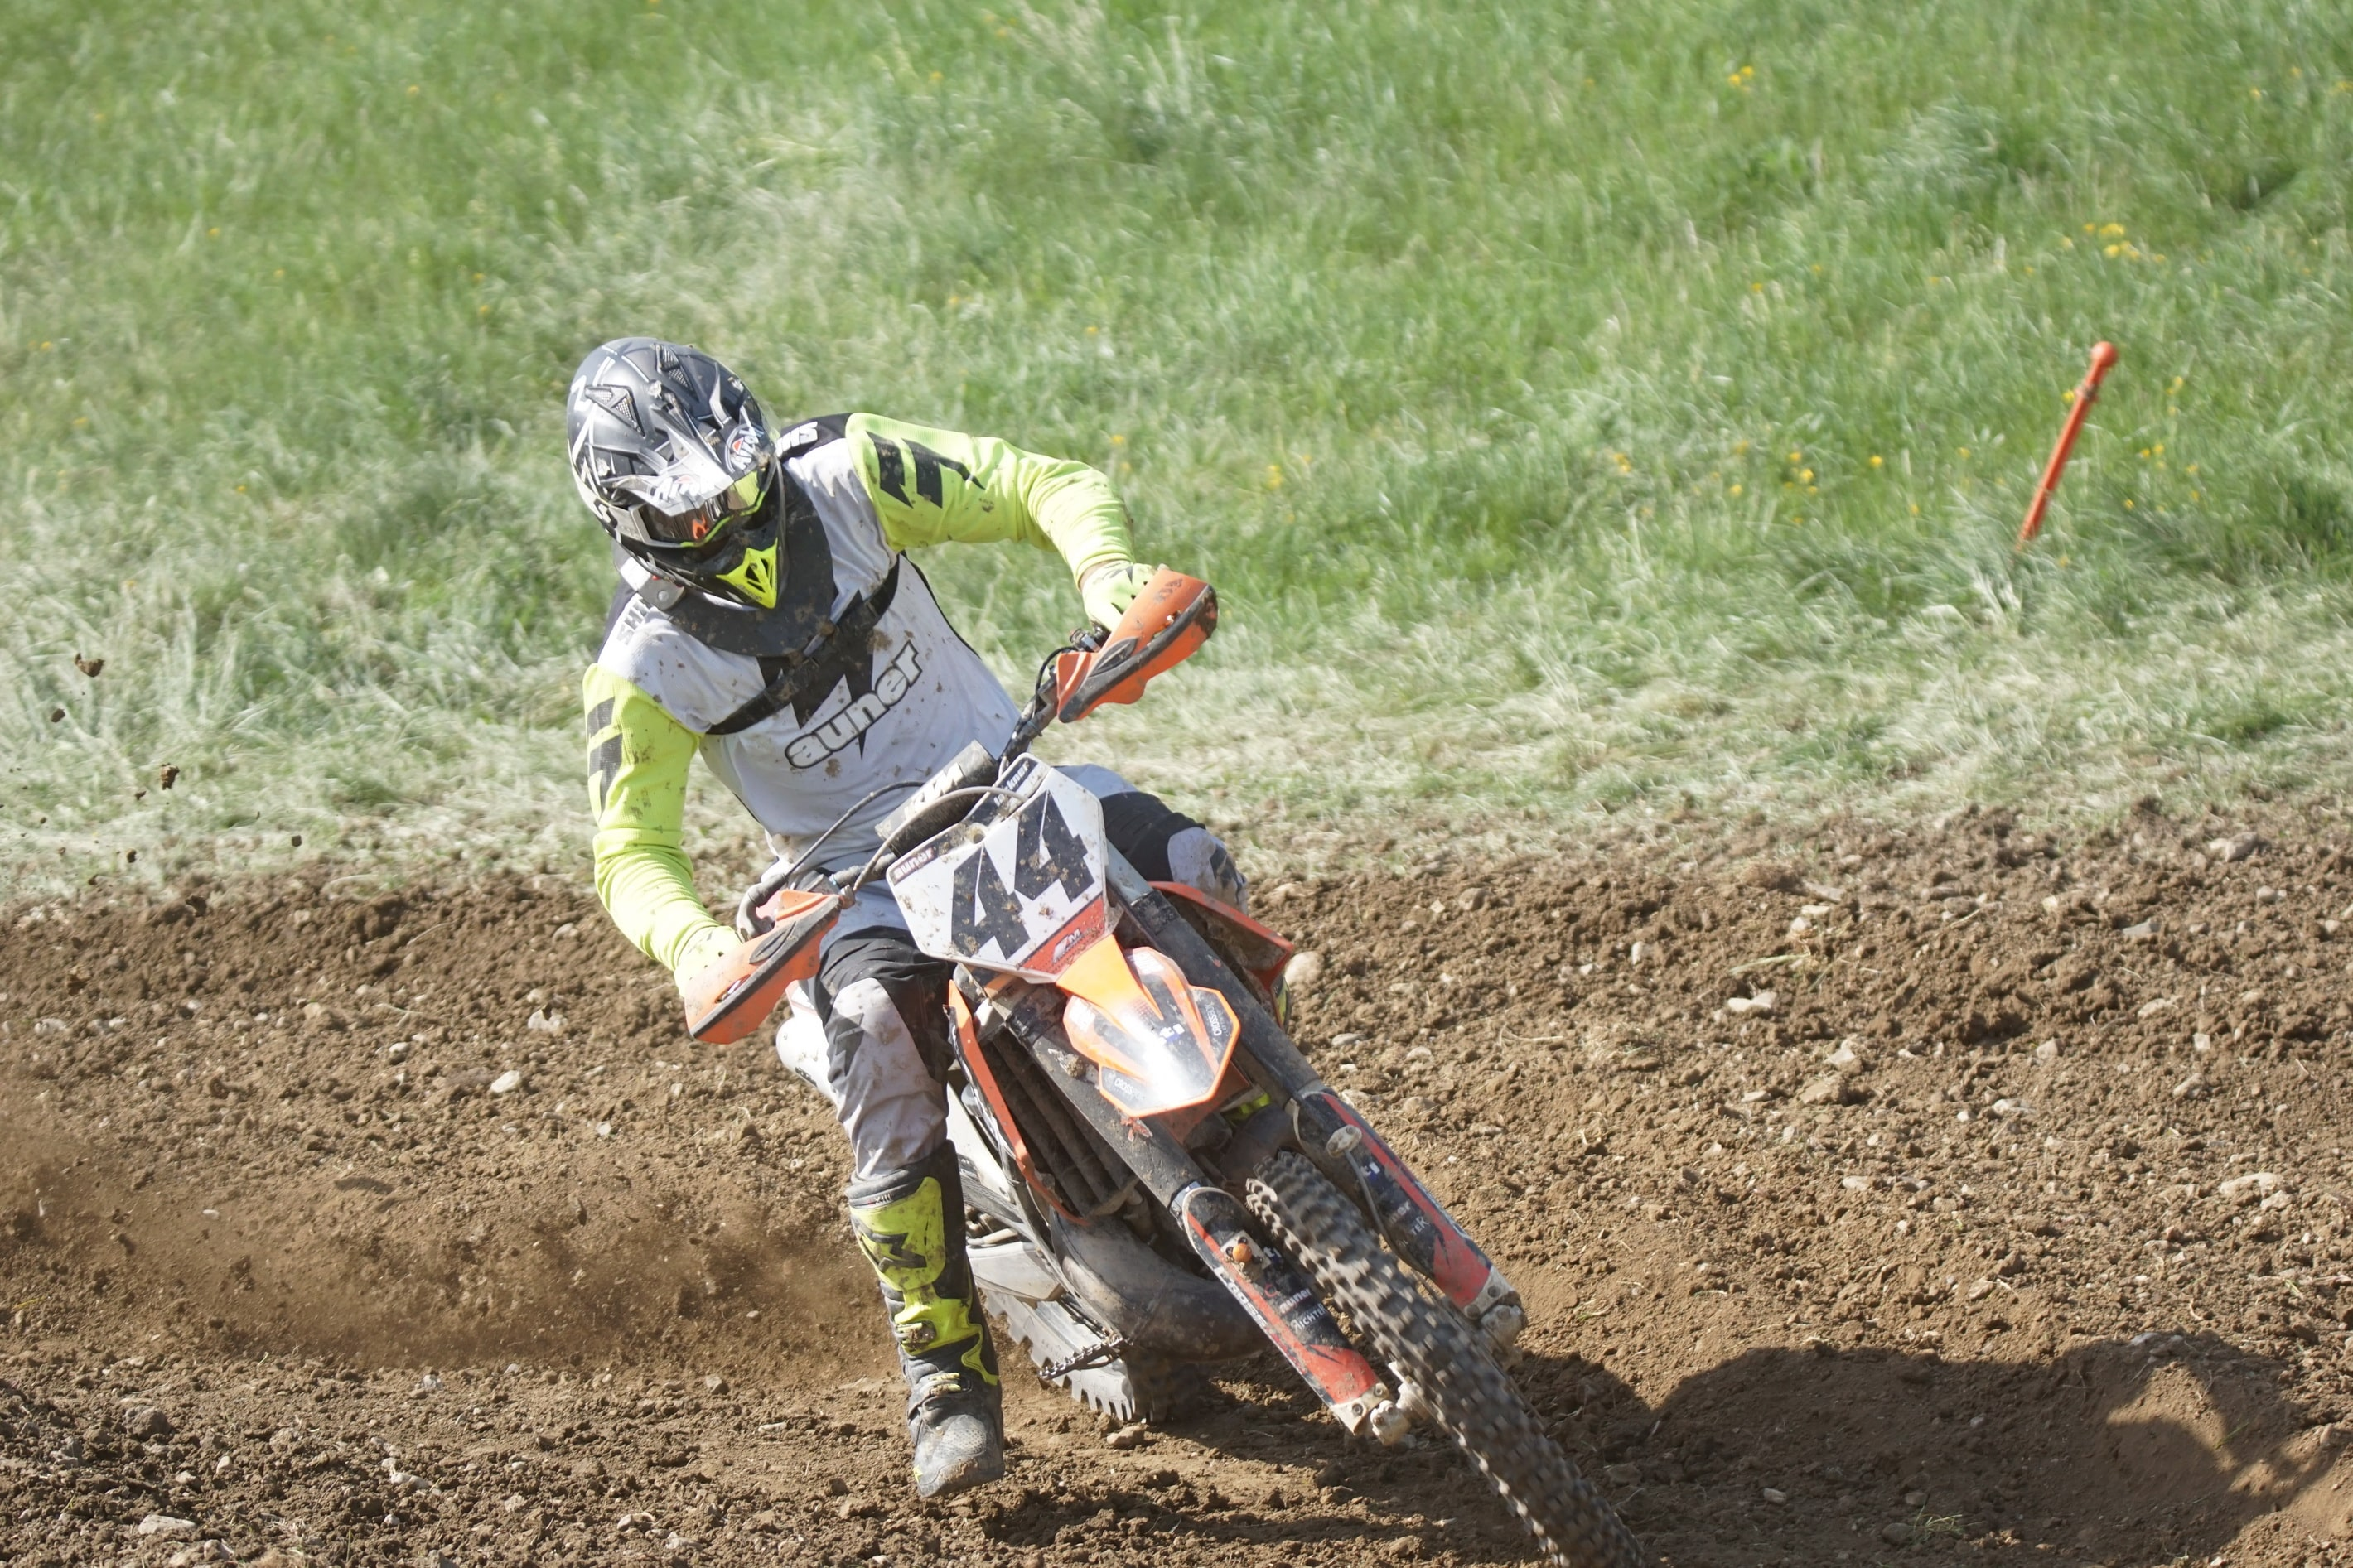 DSC 881_Moto Cross Sittendorf Teil1 am 29.04.2018